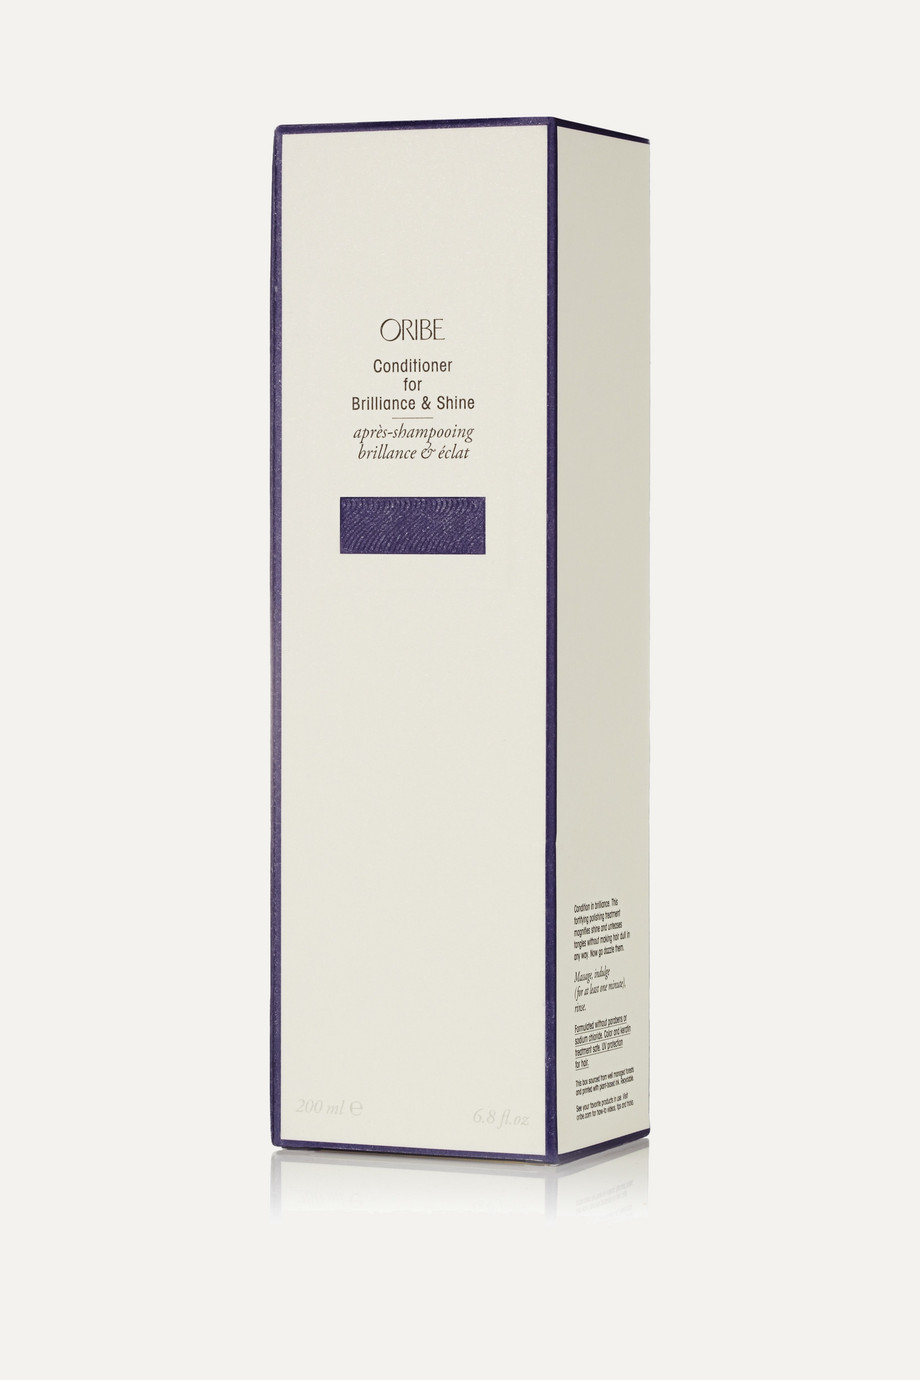 ORIBE Conditioner for Brilliance & Shine, 200ml